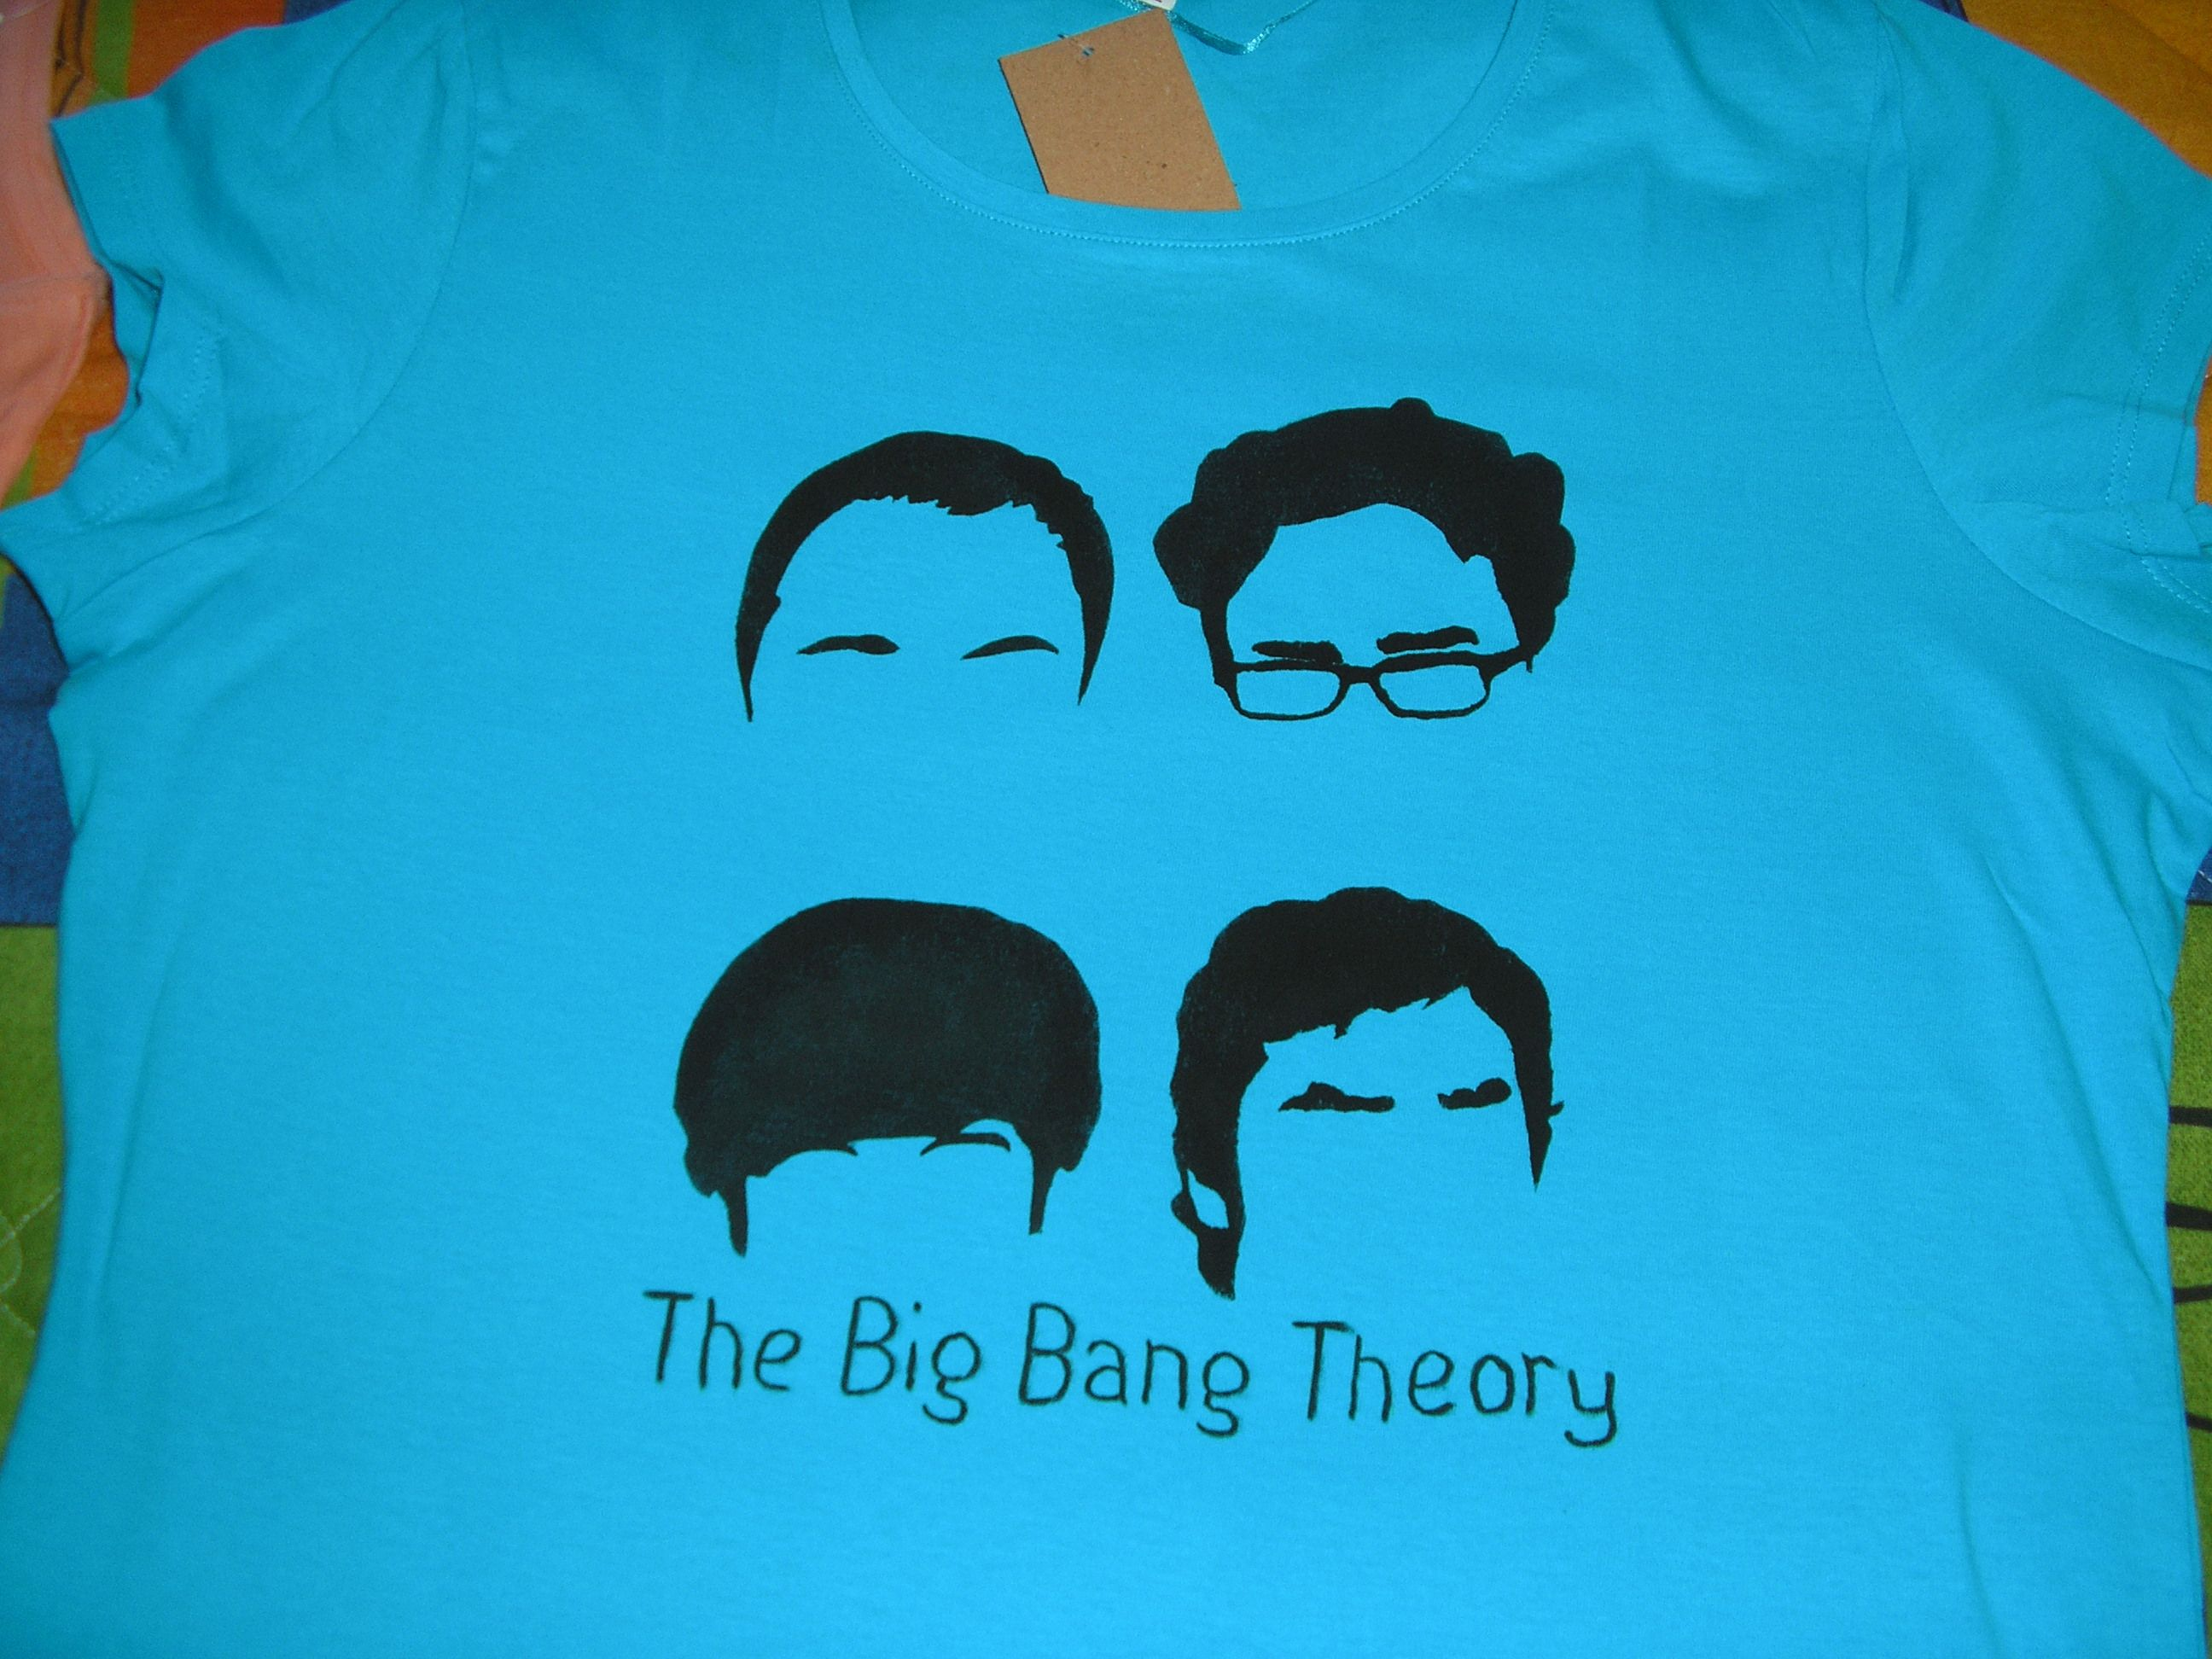 The Big Bang Theory. T-shirt, stancil and colour for fabrics.Camiseta de algodon, una plantilla de estarcido y pintura para tela.